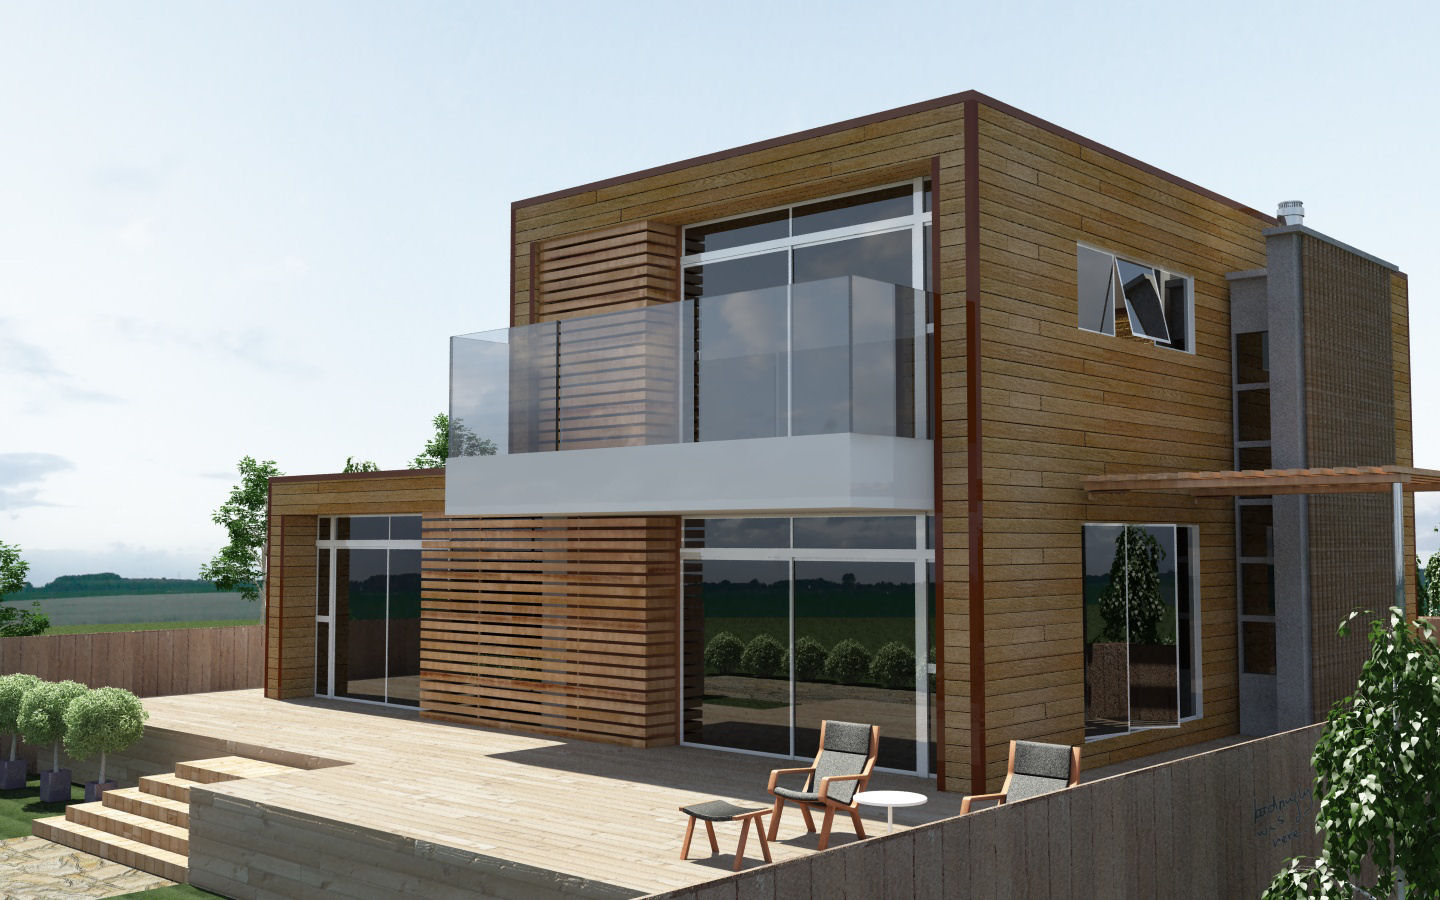 Wooden Houses / Prefabricated Houses